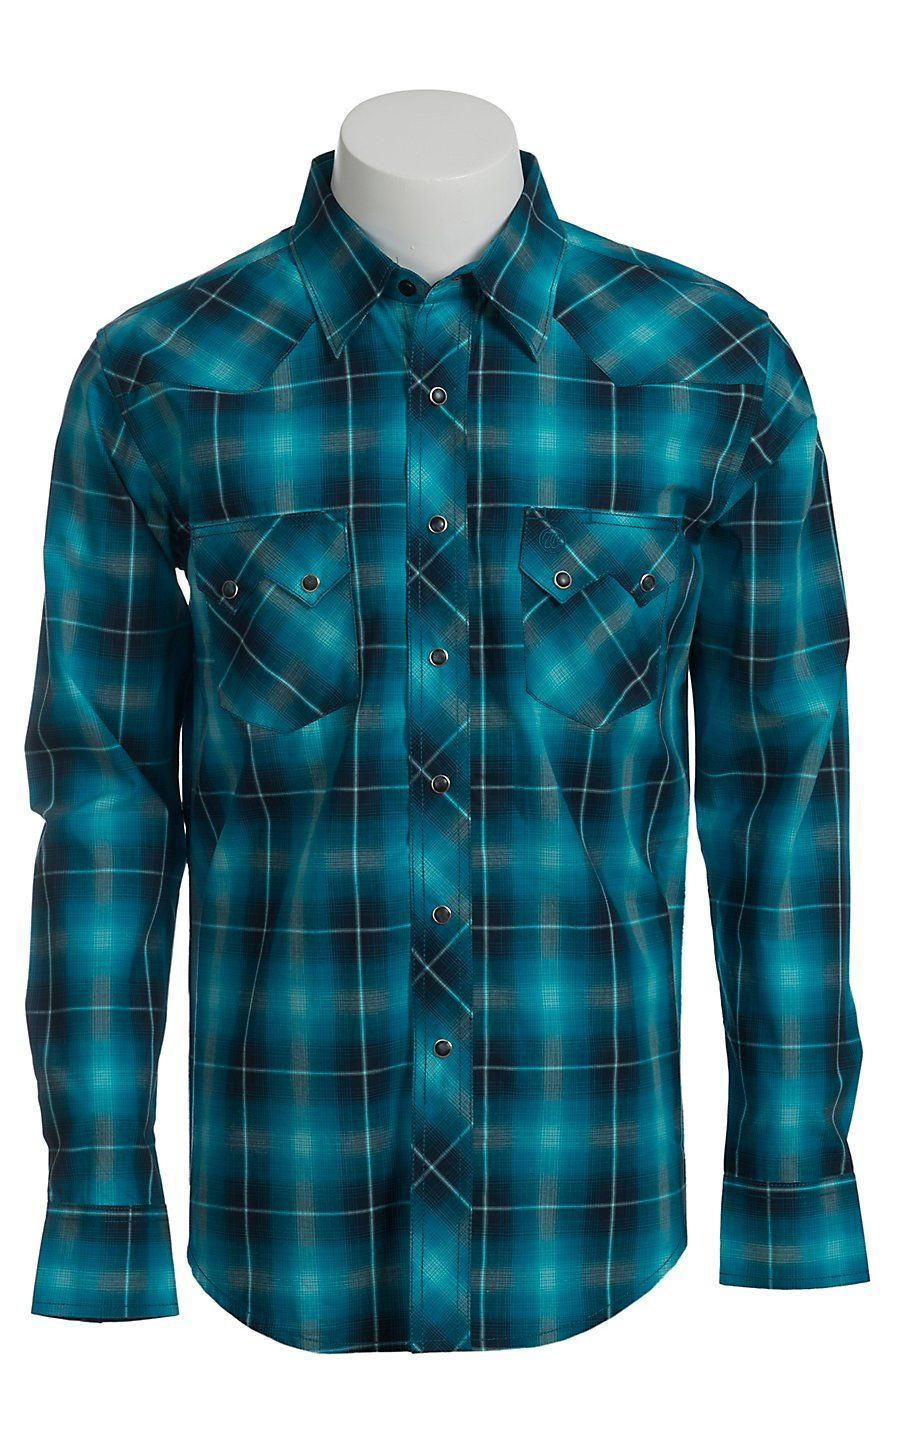 127ff96ee0 Wrangler Men s Vintage Turquoise and Blue Plaid Western Shirt ...